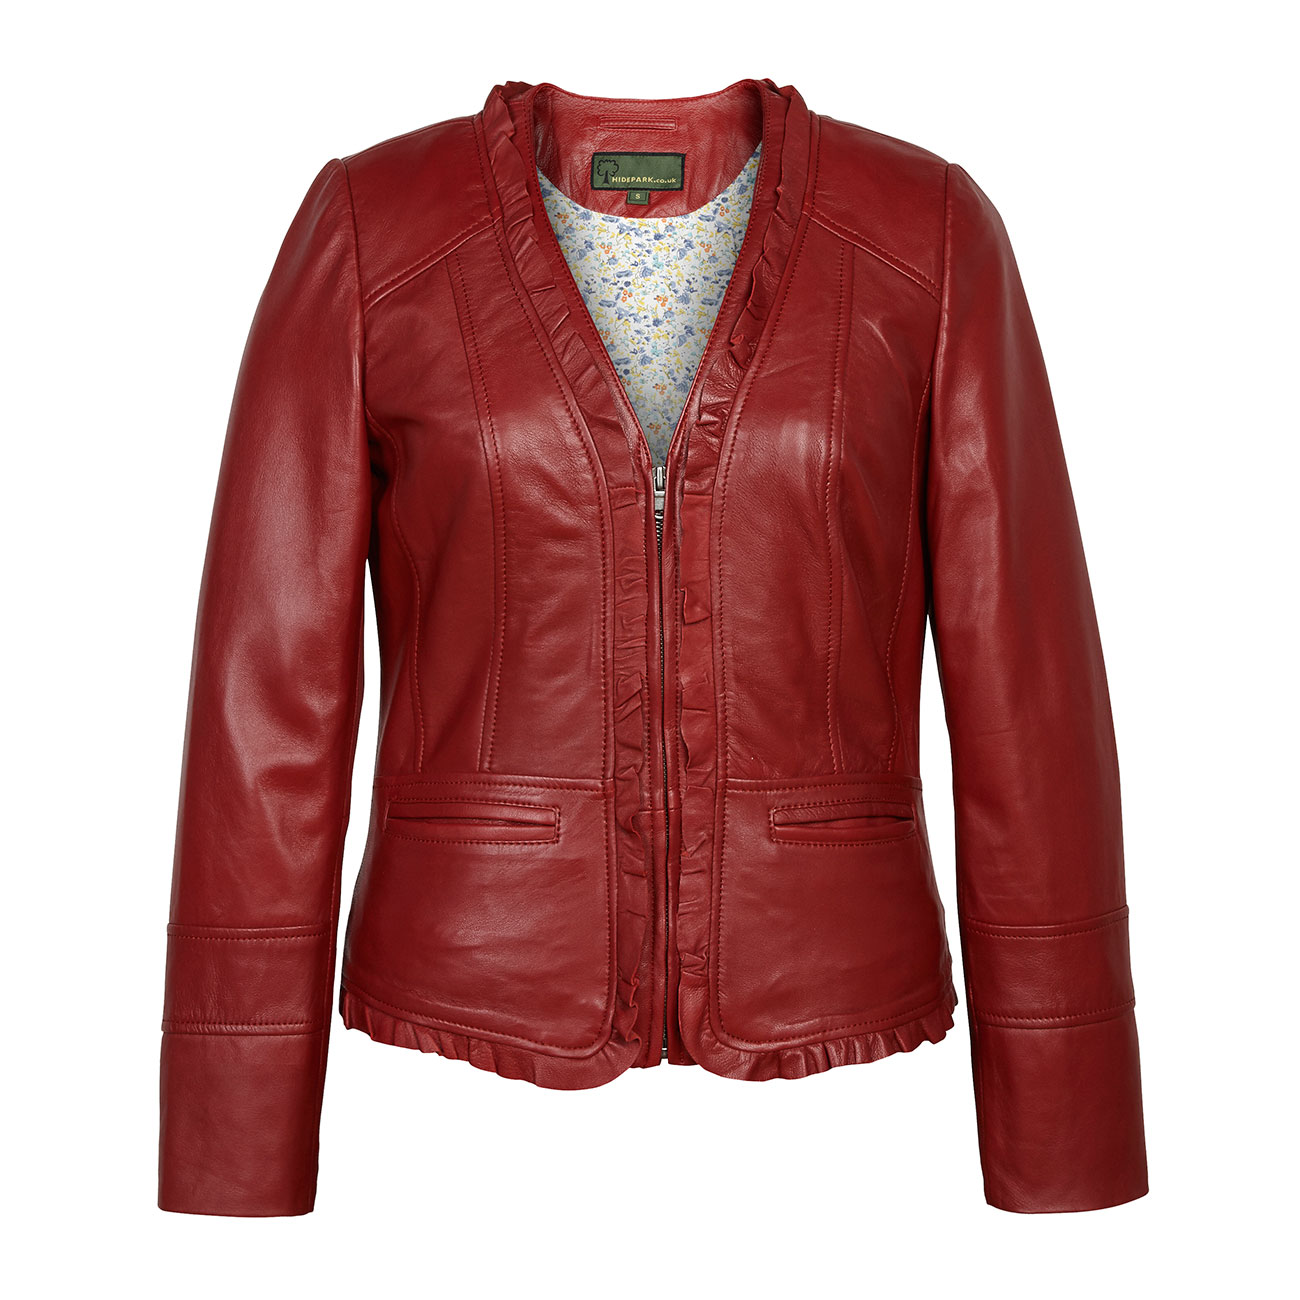 Women's Red Leather Jacket: Erin